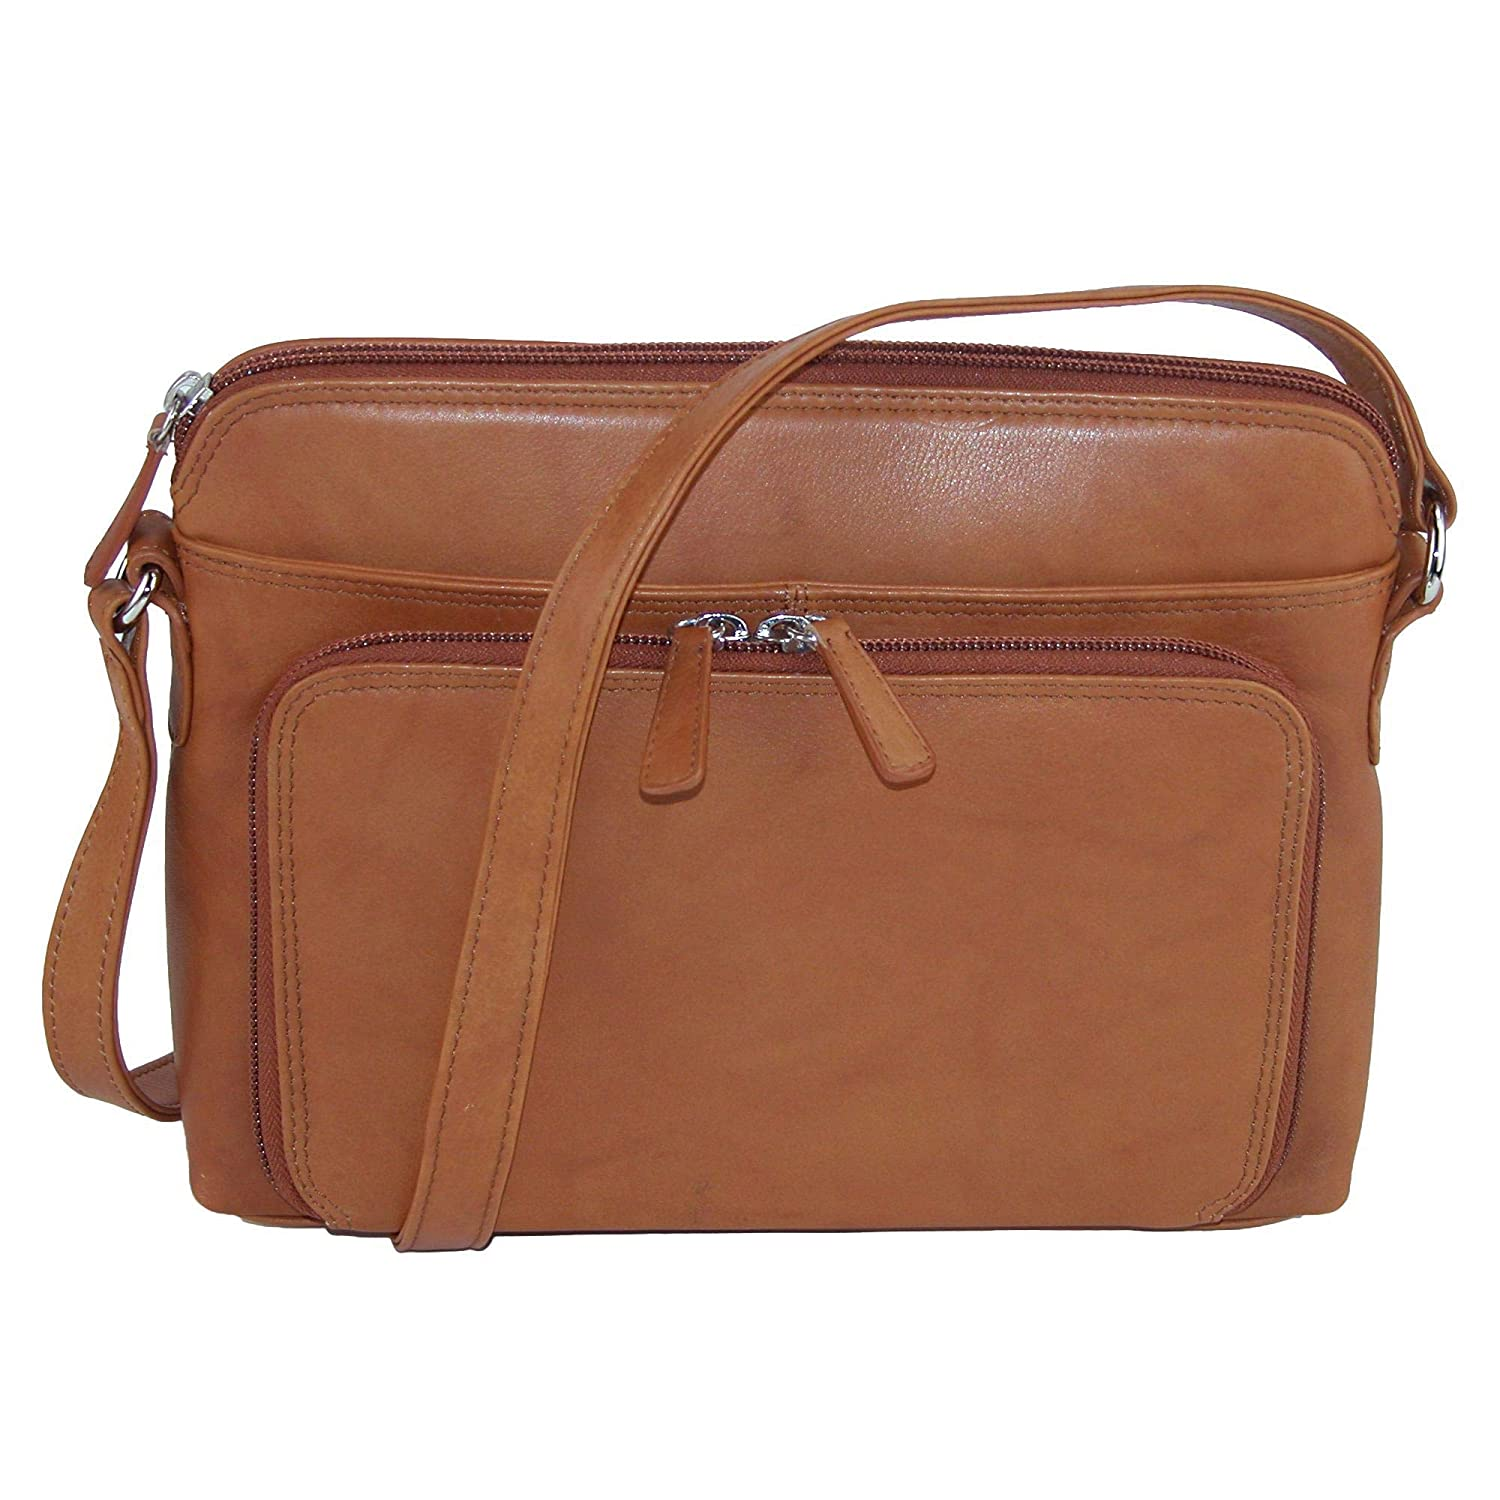 CTM Women s Leather Shoulder Bag Purse with Side Organizer b181f457e4823